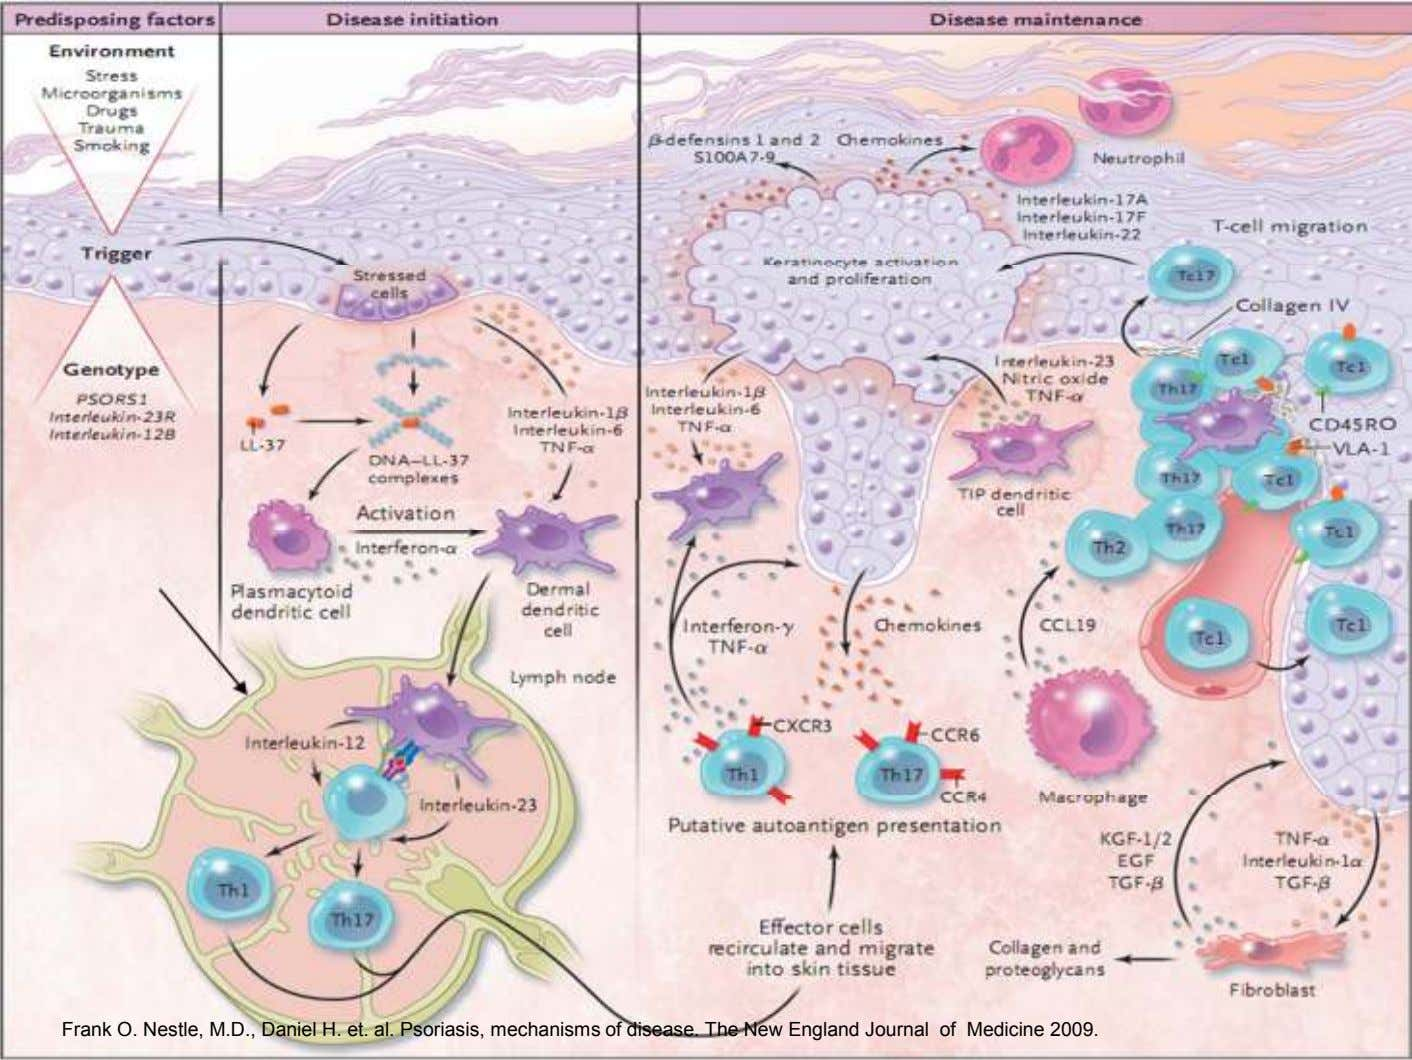 Frank O. Nestle, M.D., Daniel H. et. al. Psoriasis, mechanisms of disease. The New England